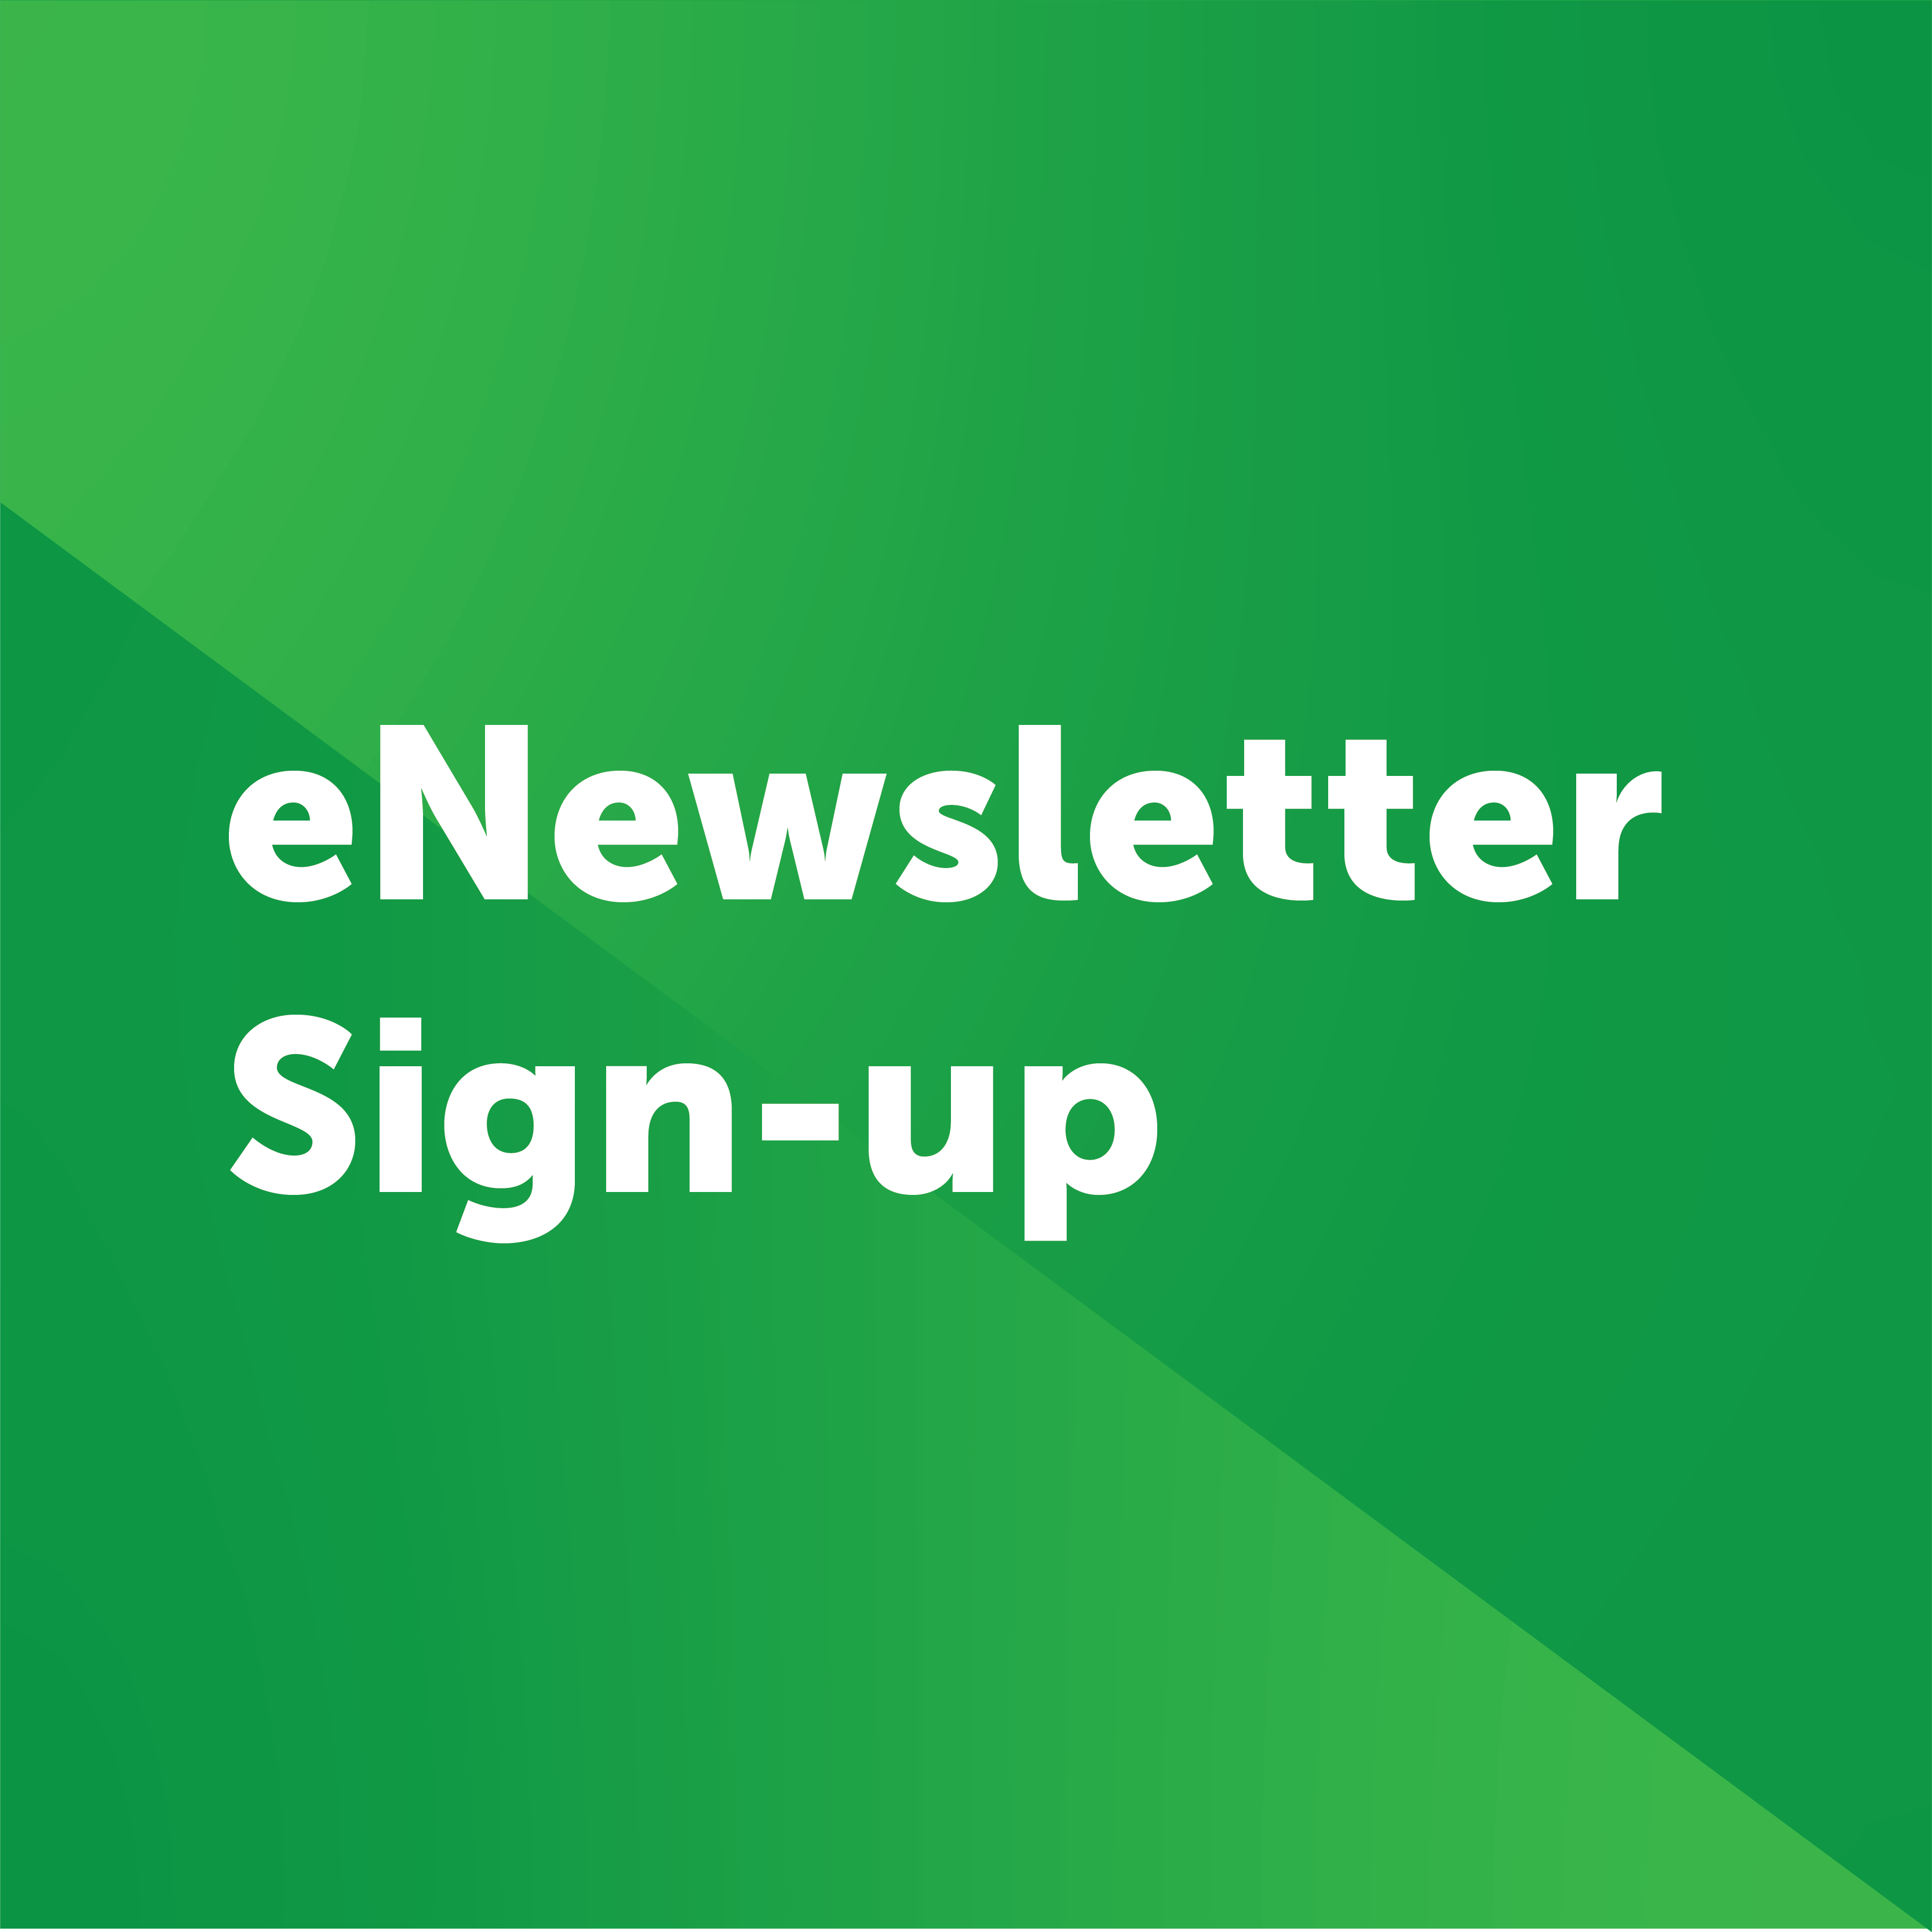 enewsletter sign up button